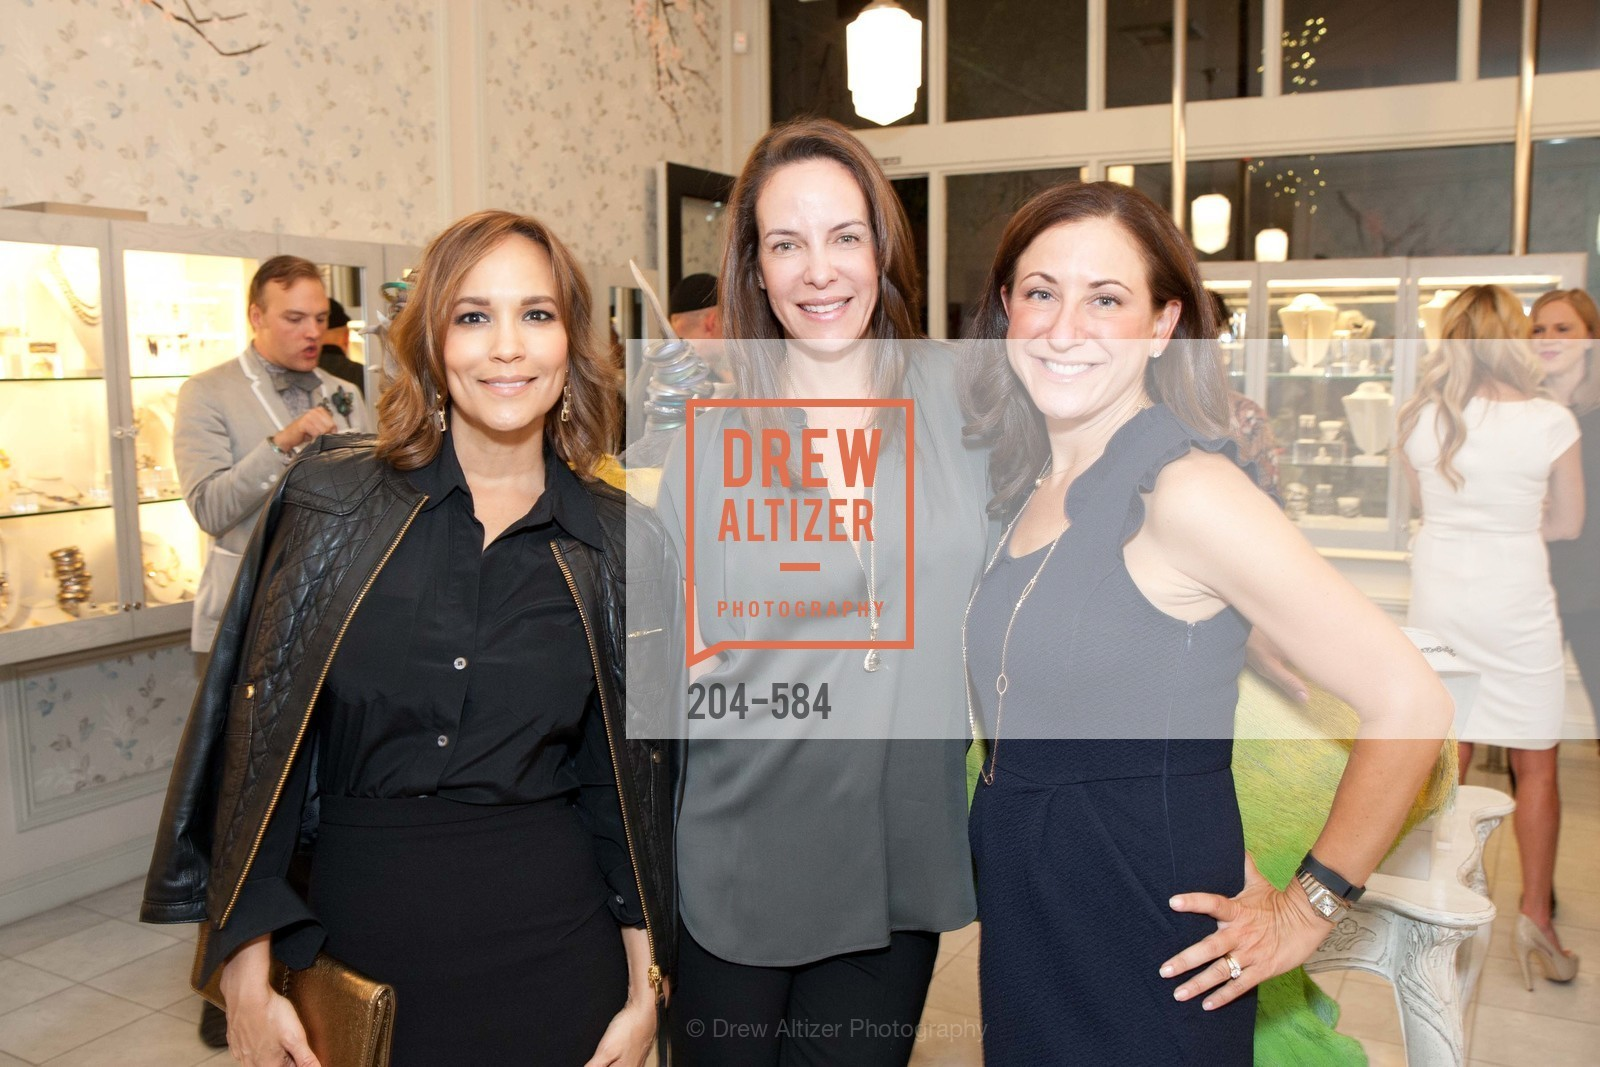 Lora DuBain, Julie Veronese, Victoria Dade, 141001-AlexisBittar-correct, US, October 1st, 2014,Drew Altizer, Drew Altizer Photography, full-service agency, private events, San Francisco photographer, photographer california